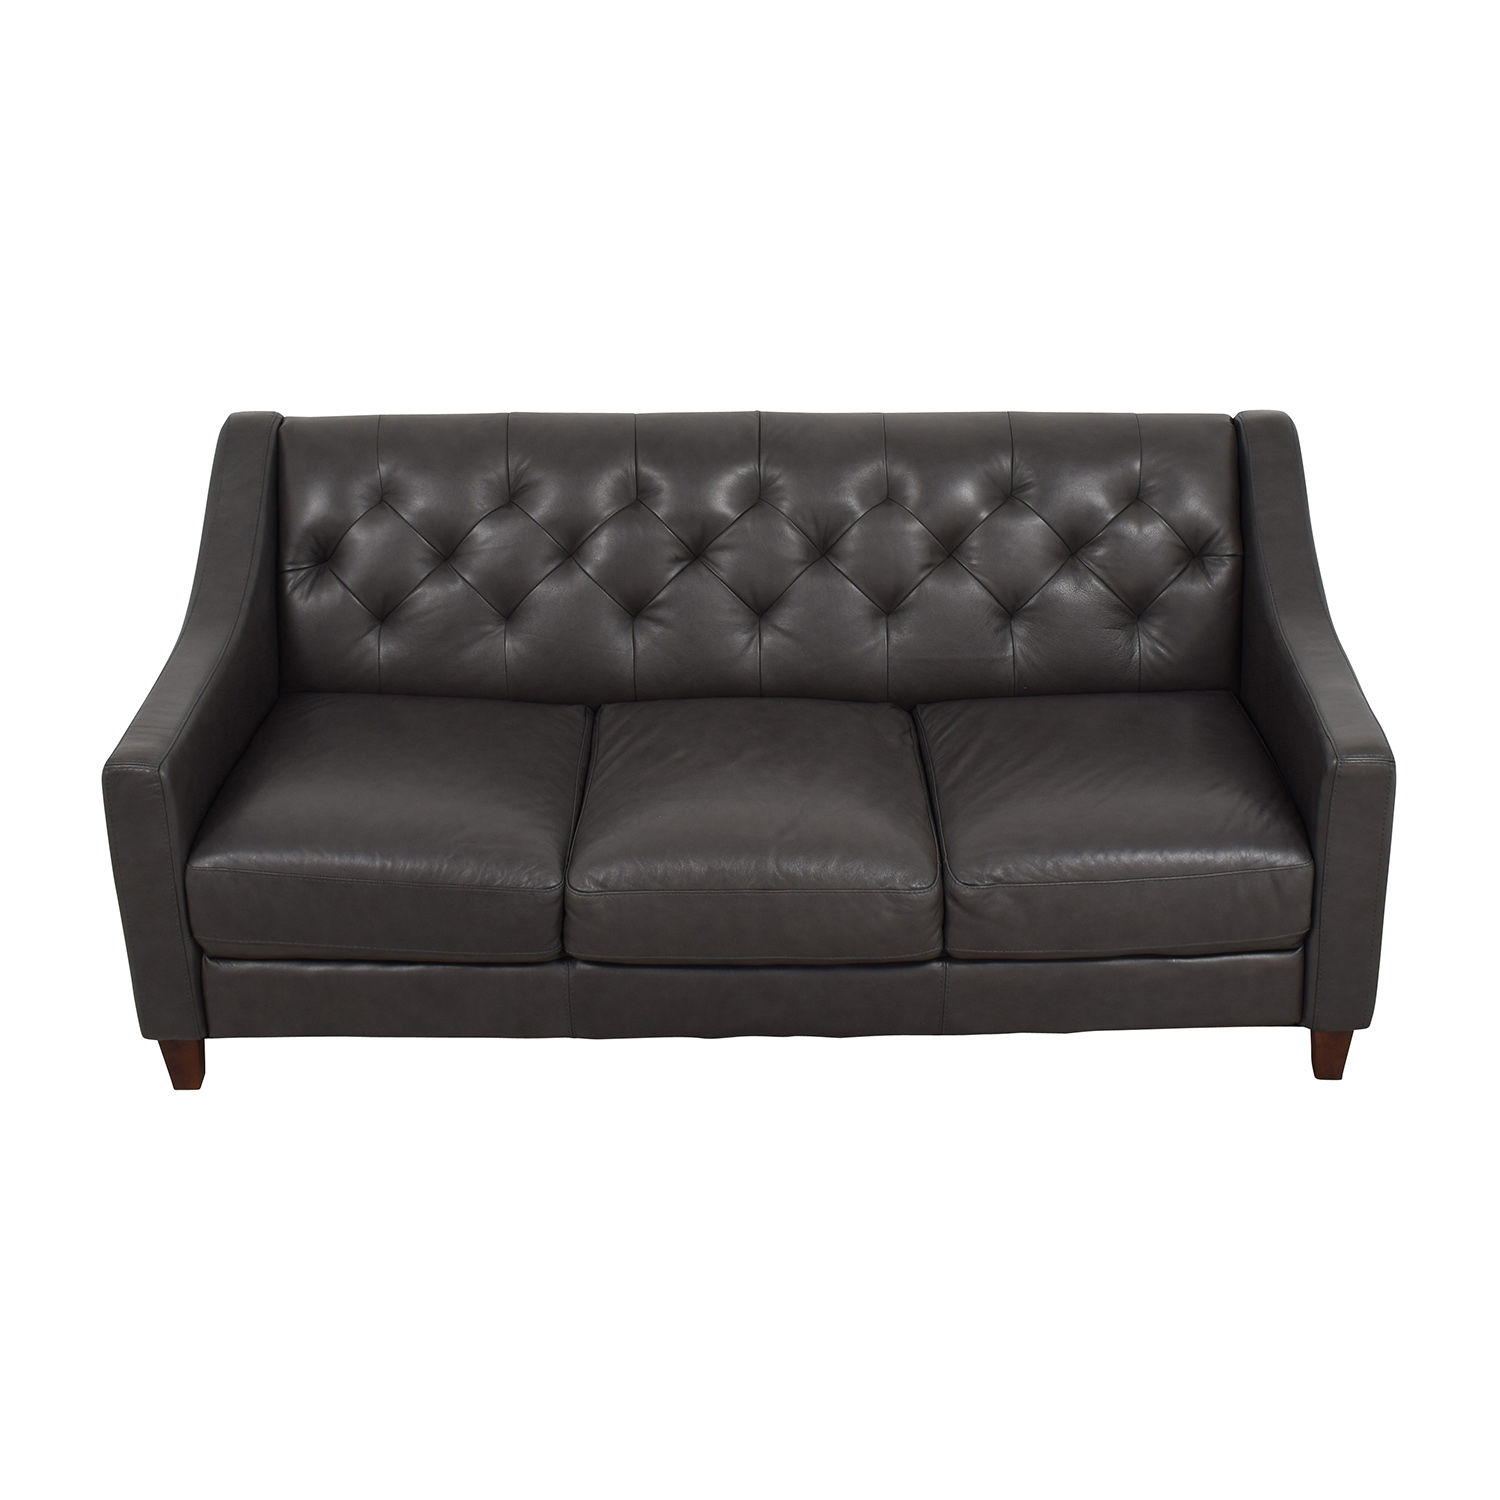 Macys Macys Tufted Gray Leather Sofa discount